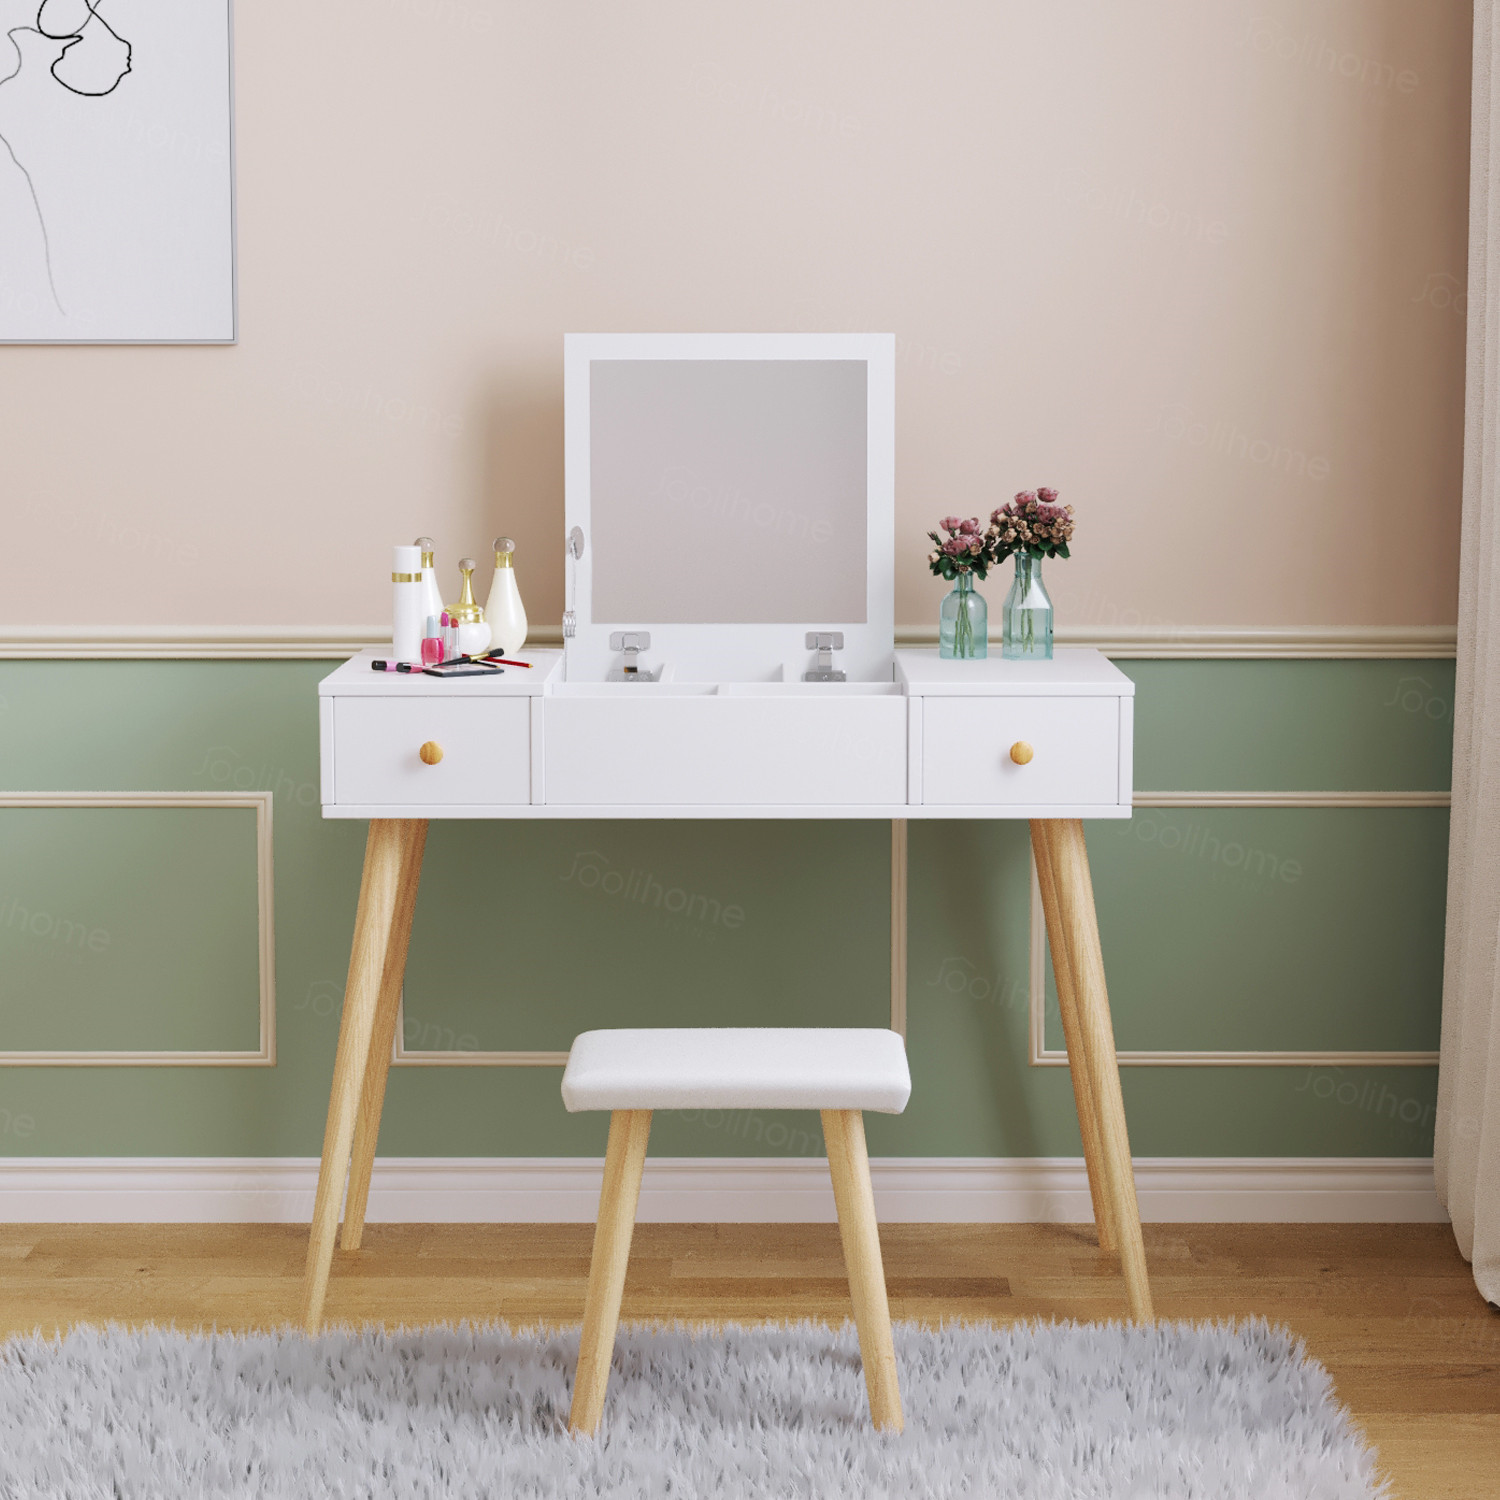 Details About Dressing Table Vanity Jewelry Makeup Desk W Mirror Drawer Stool Office Storage